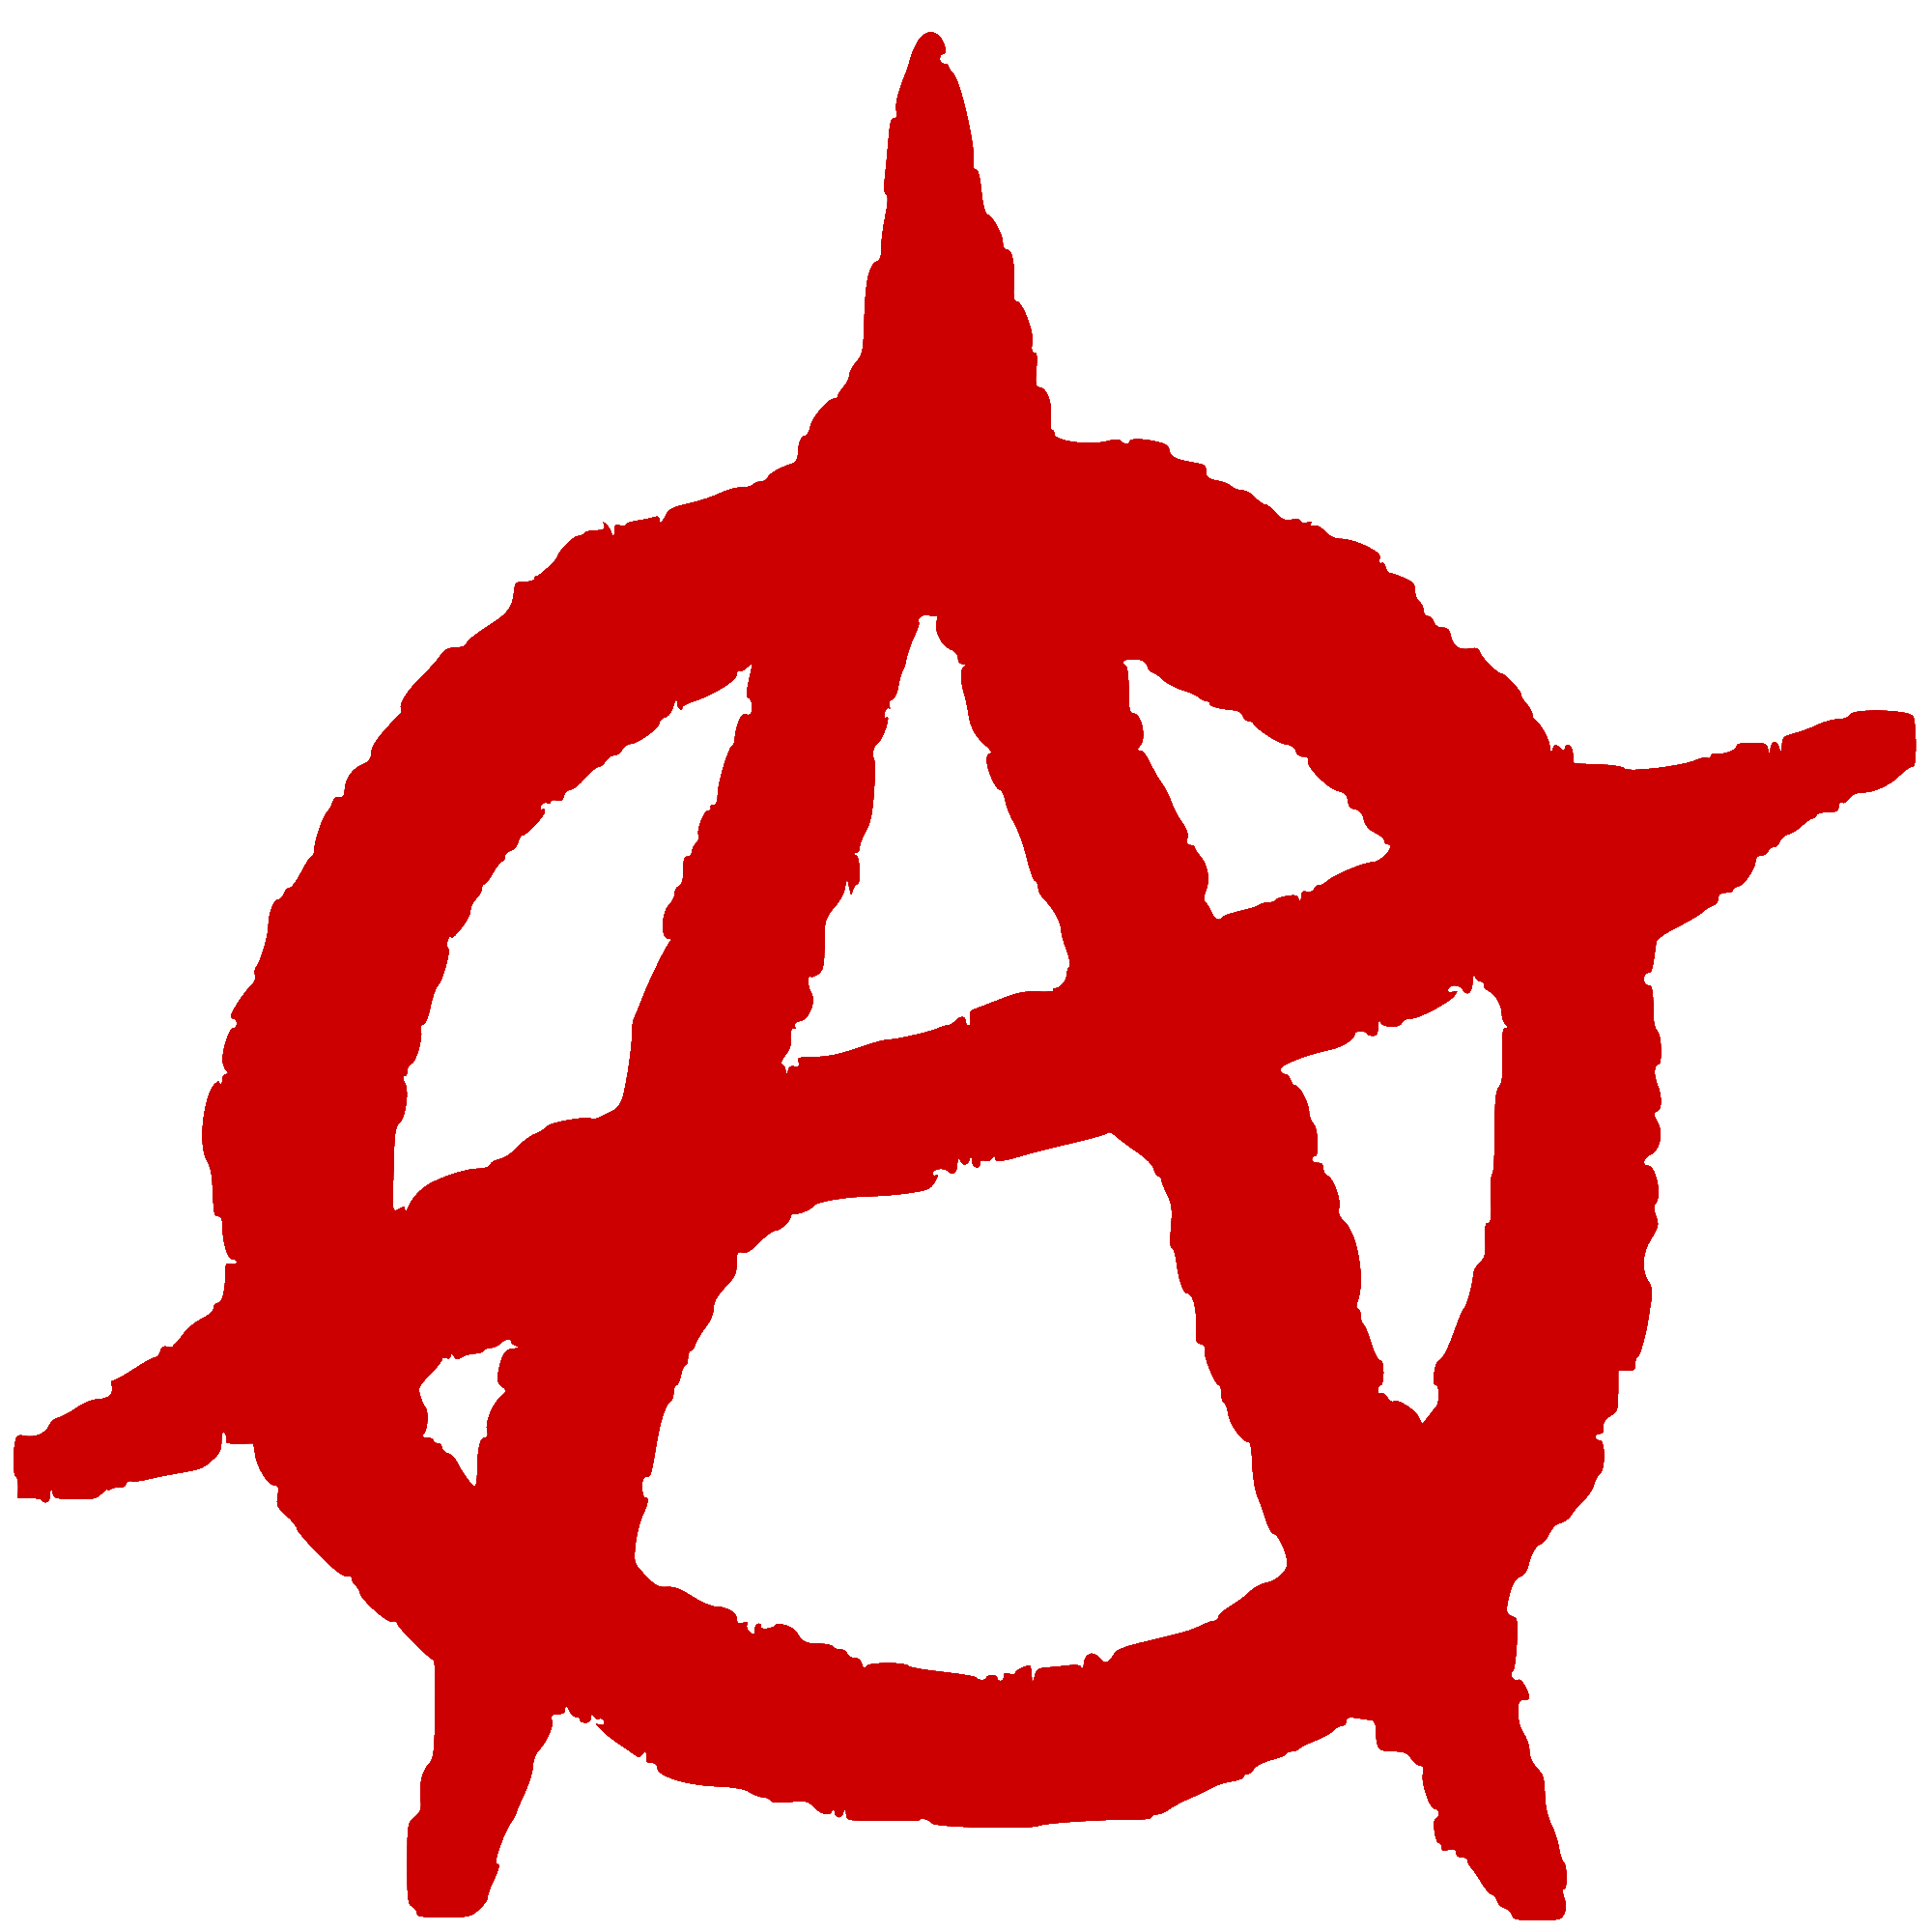 Black cross anarchist symbol buycottarizona